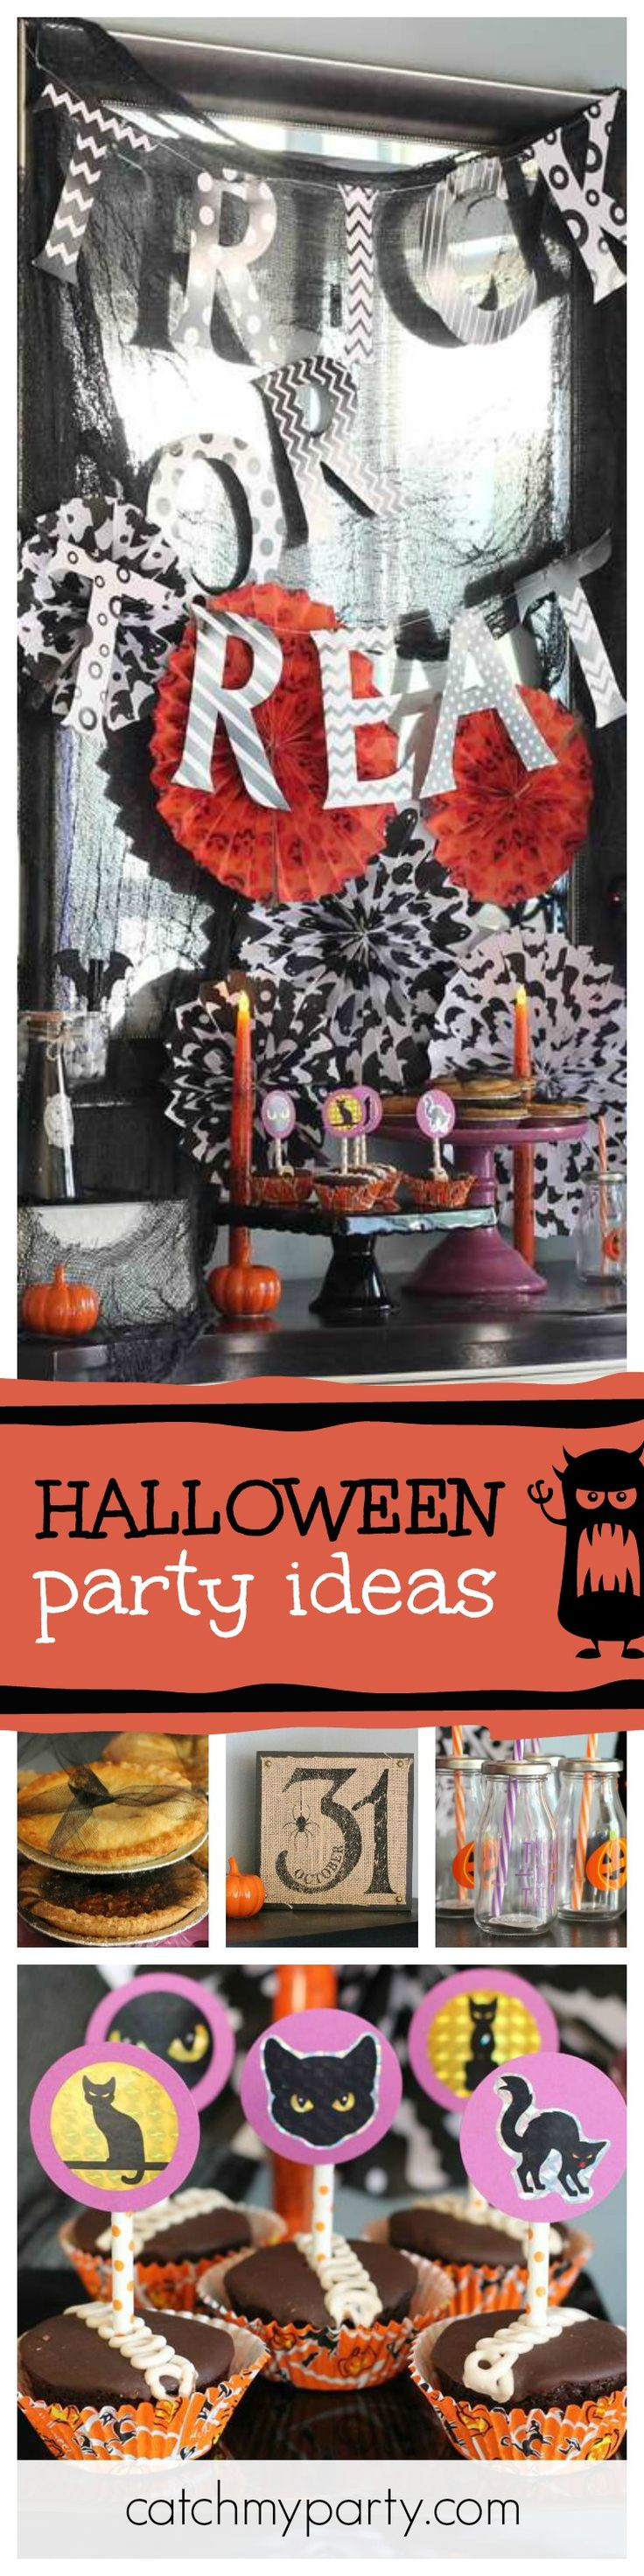 904 best Halloween Party Ideas images on Pinterest